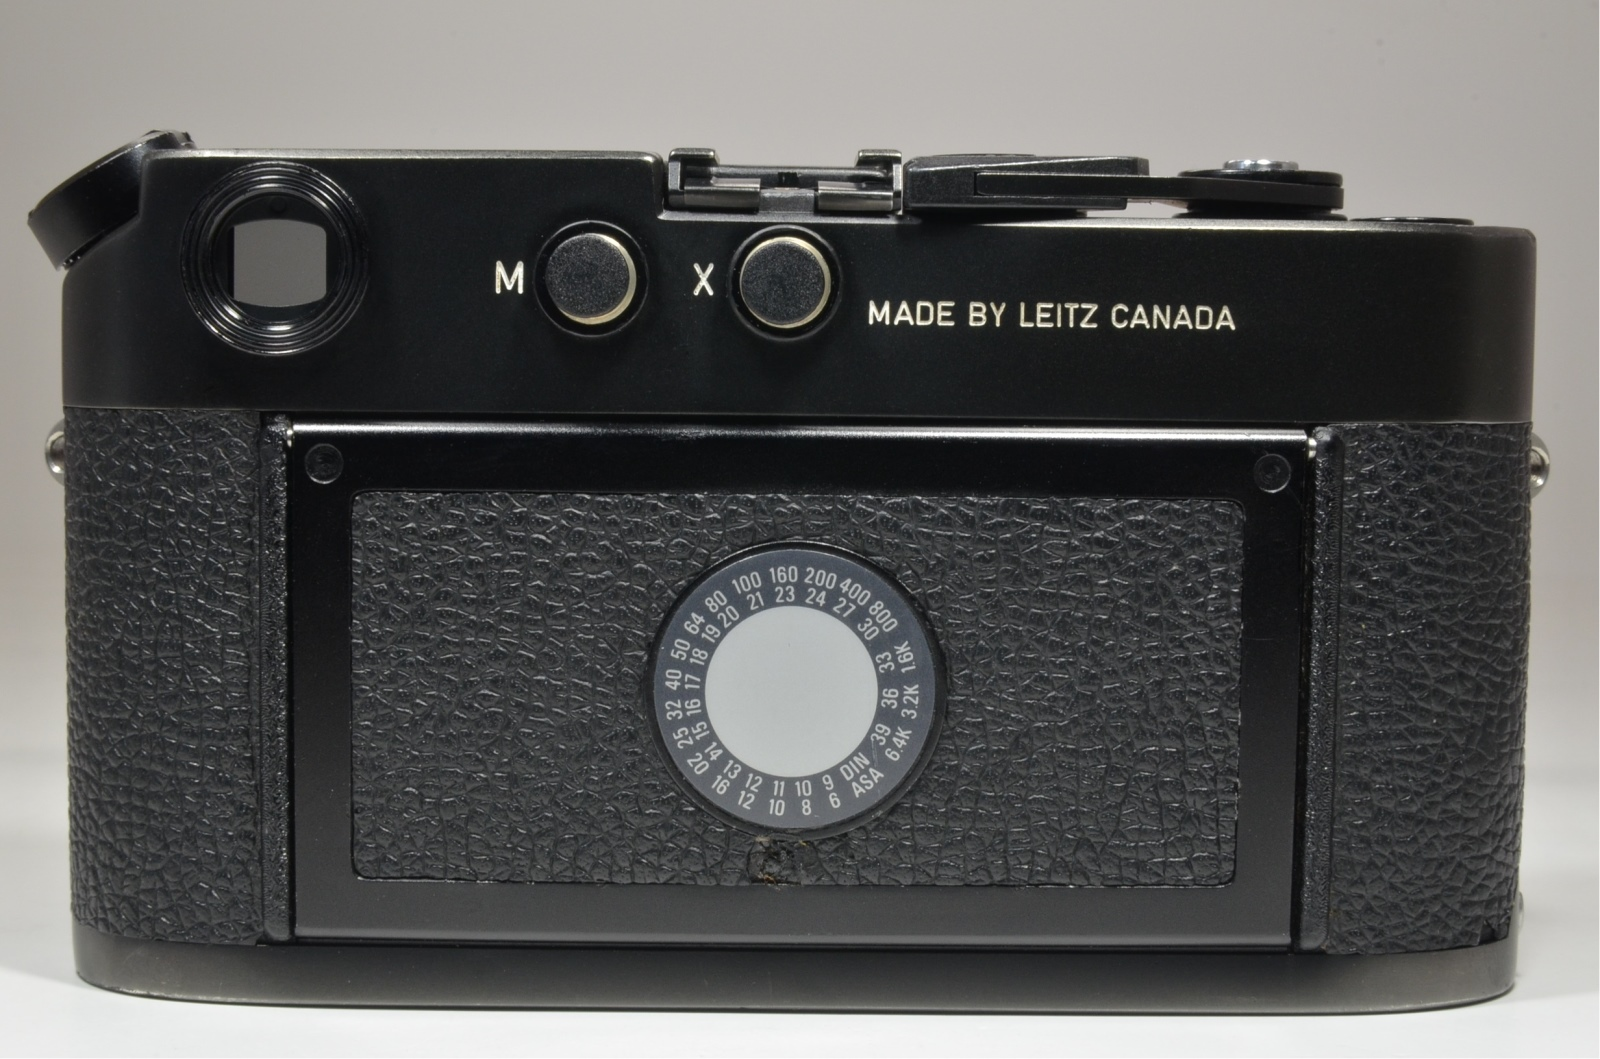 leica m4-p black 35mm rangefinder film camera s/n *1552782 with strap